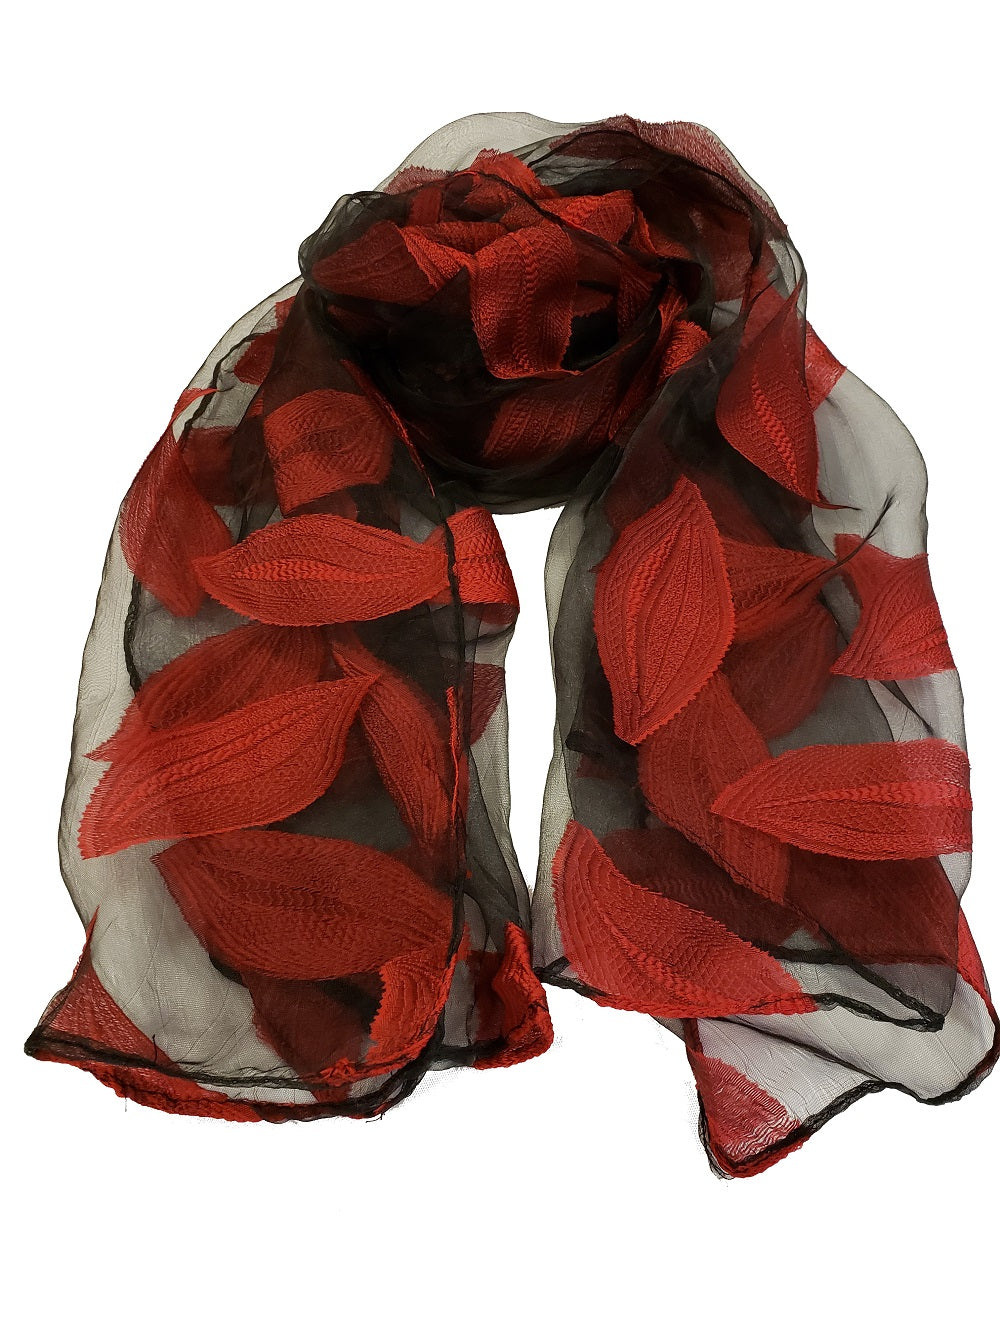 Sheer Leaf Pattern Embroidery Scarf - Red - CeCe Fashion Boutique